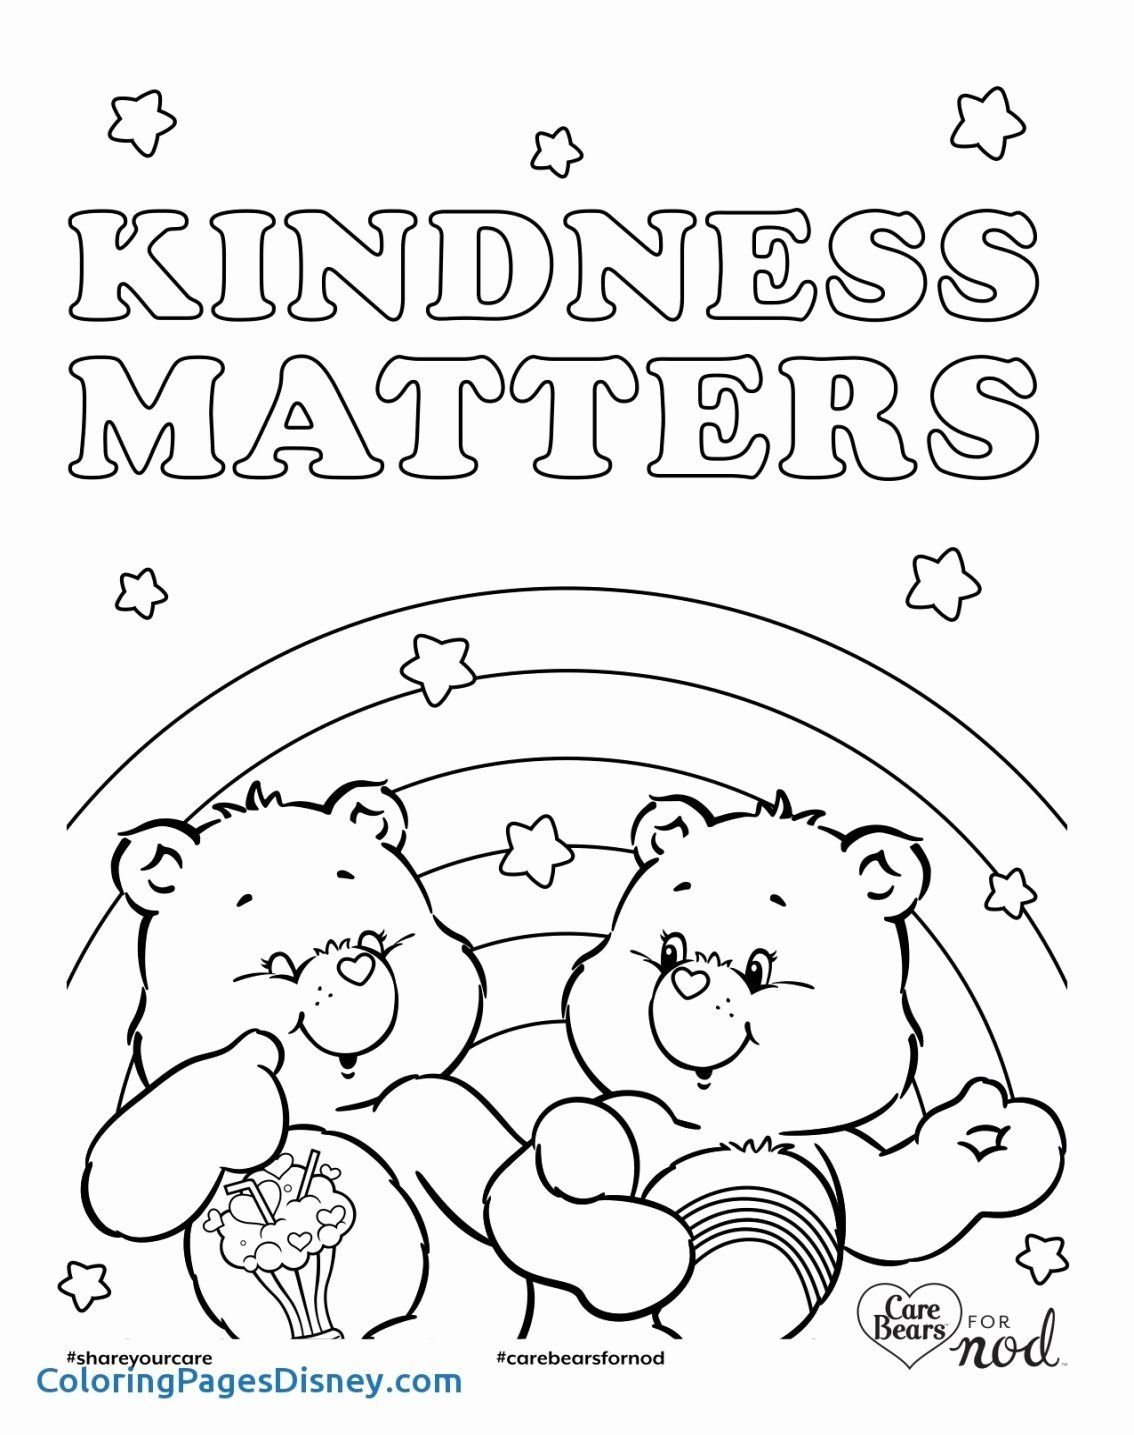 Princess Horse Coloring Pages Luxury Coloring Pages For Adults Disney Coloring Boo Bear Coloring Pages Teddy Bear Coloring Pages Disney Princess Coloring Pages